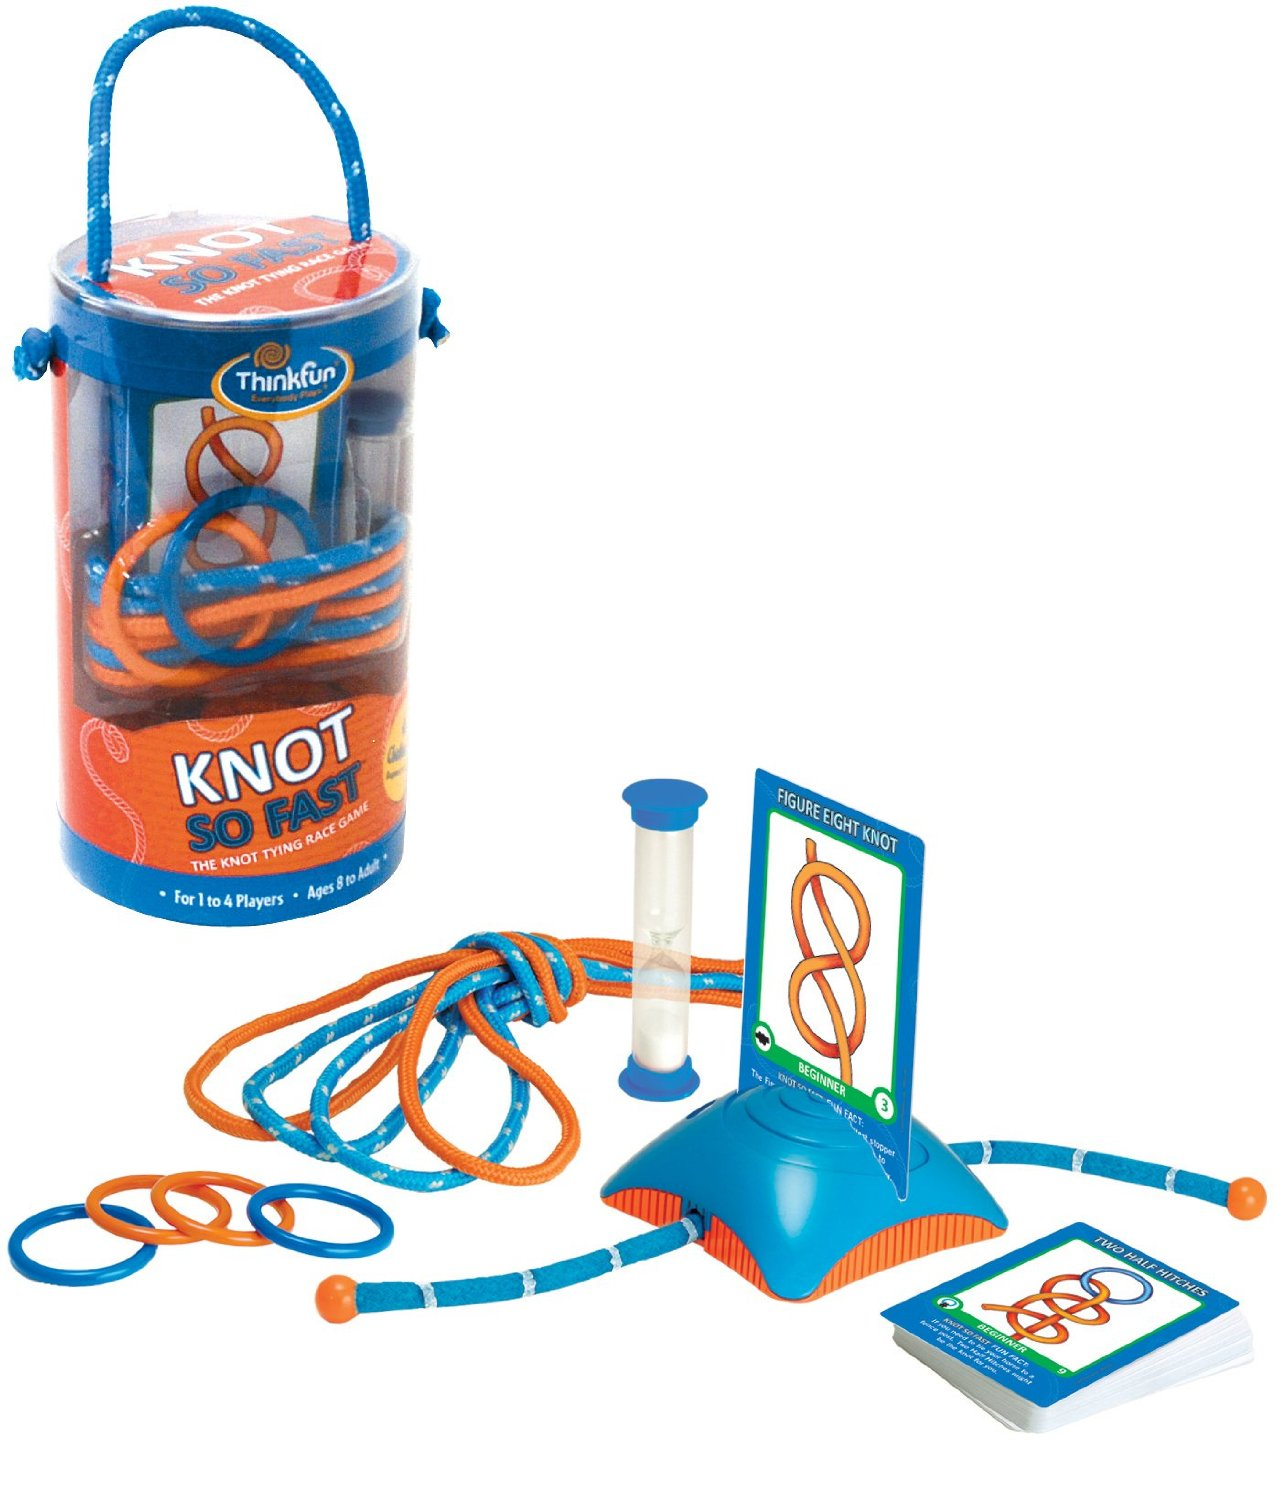 KNOT so Fast: Learn valuable outdoor skills on family game night!